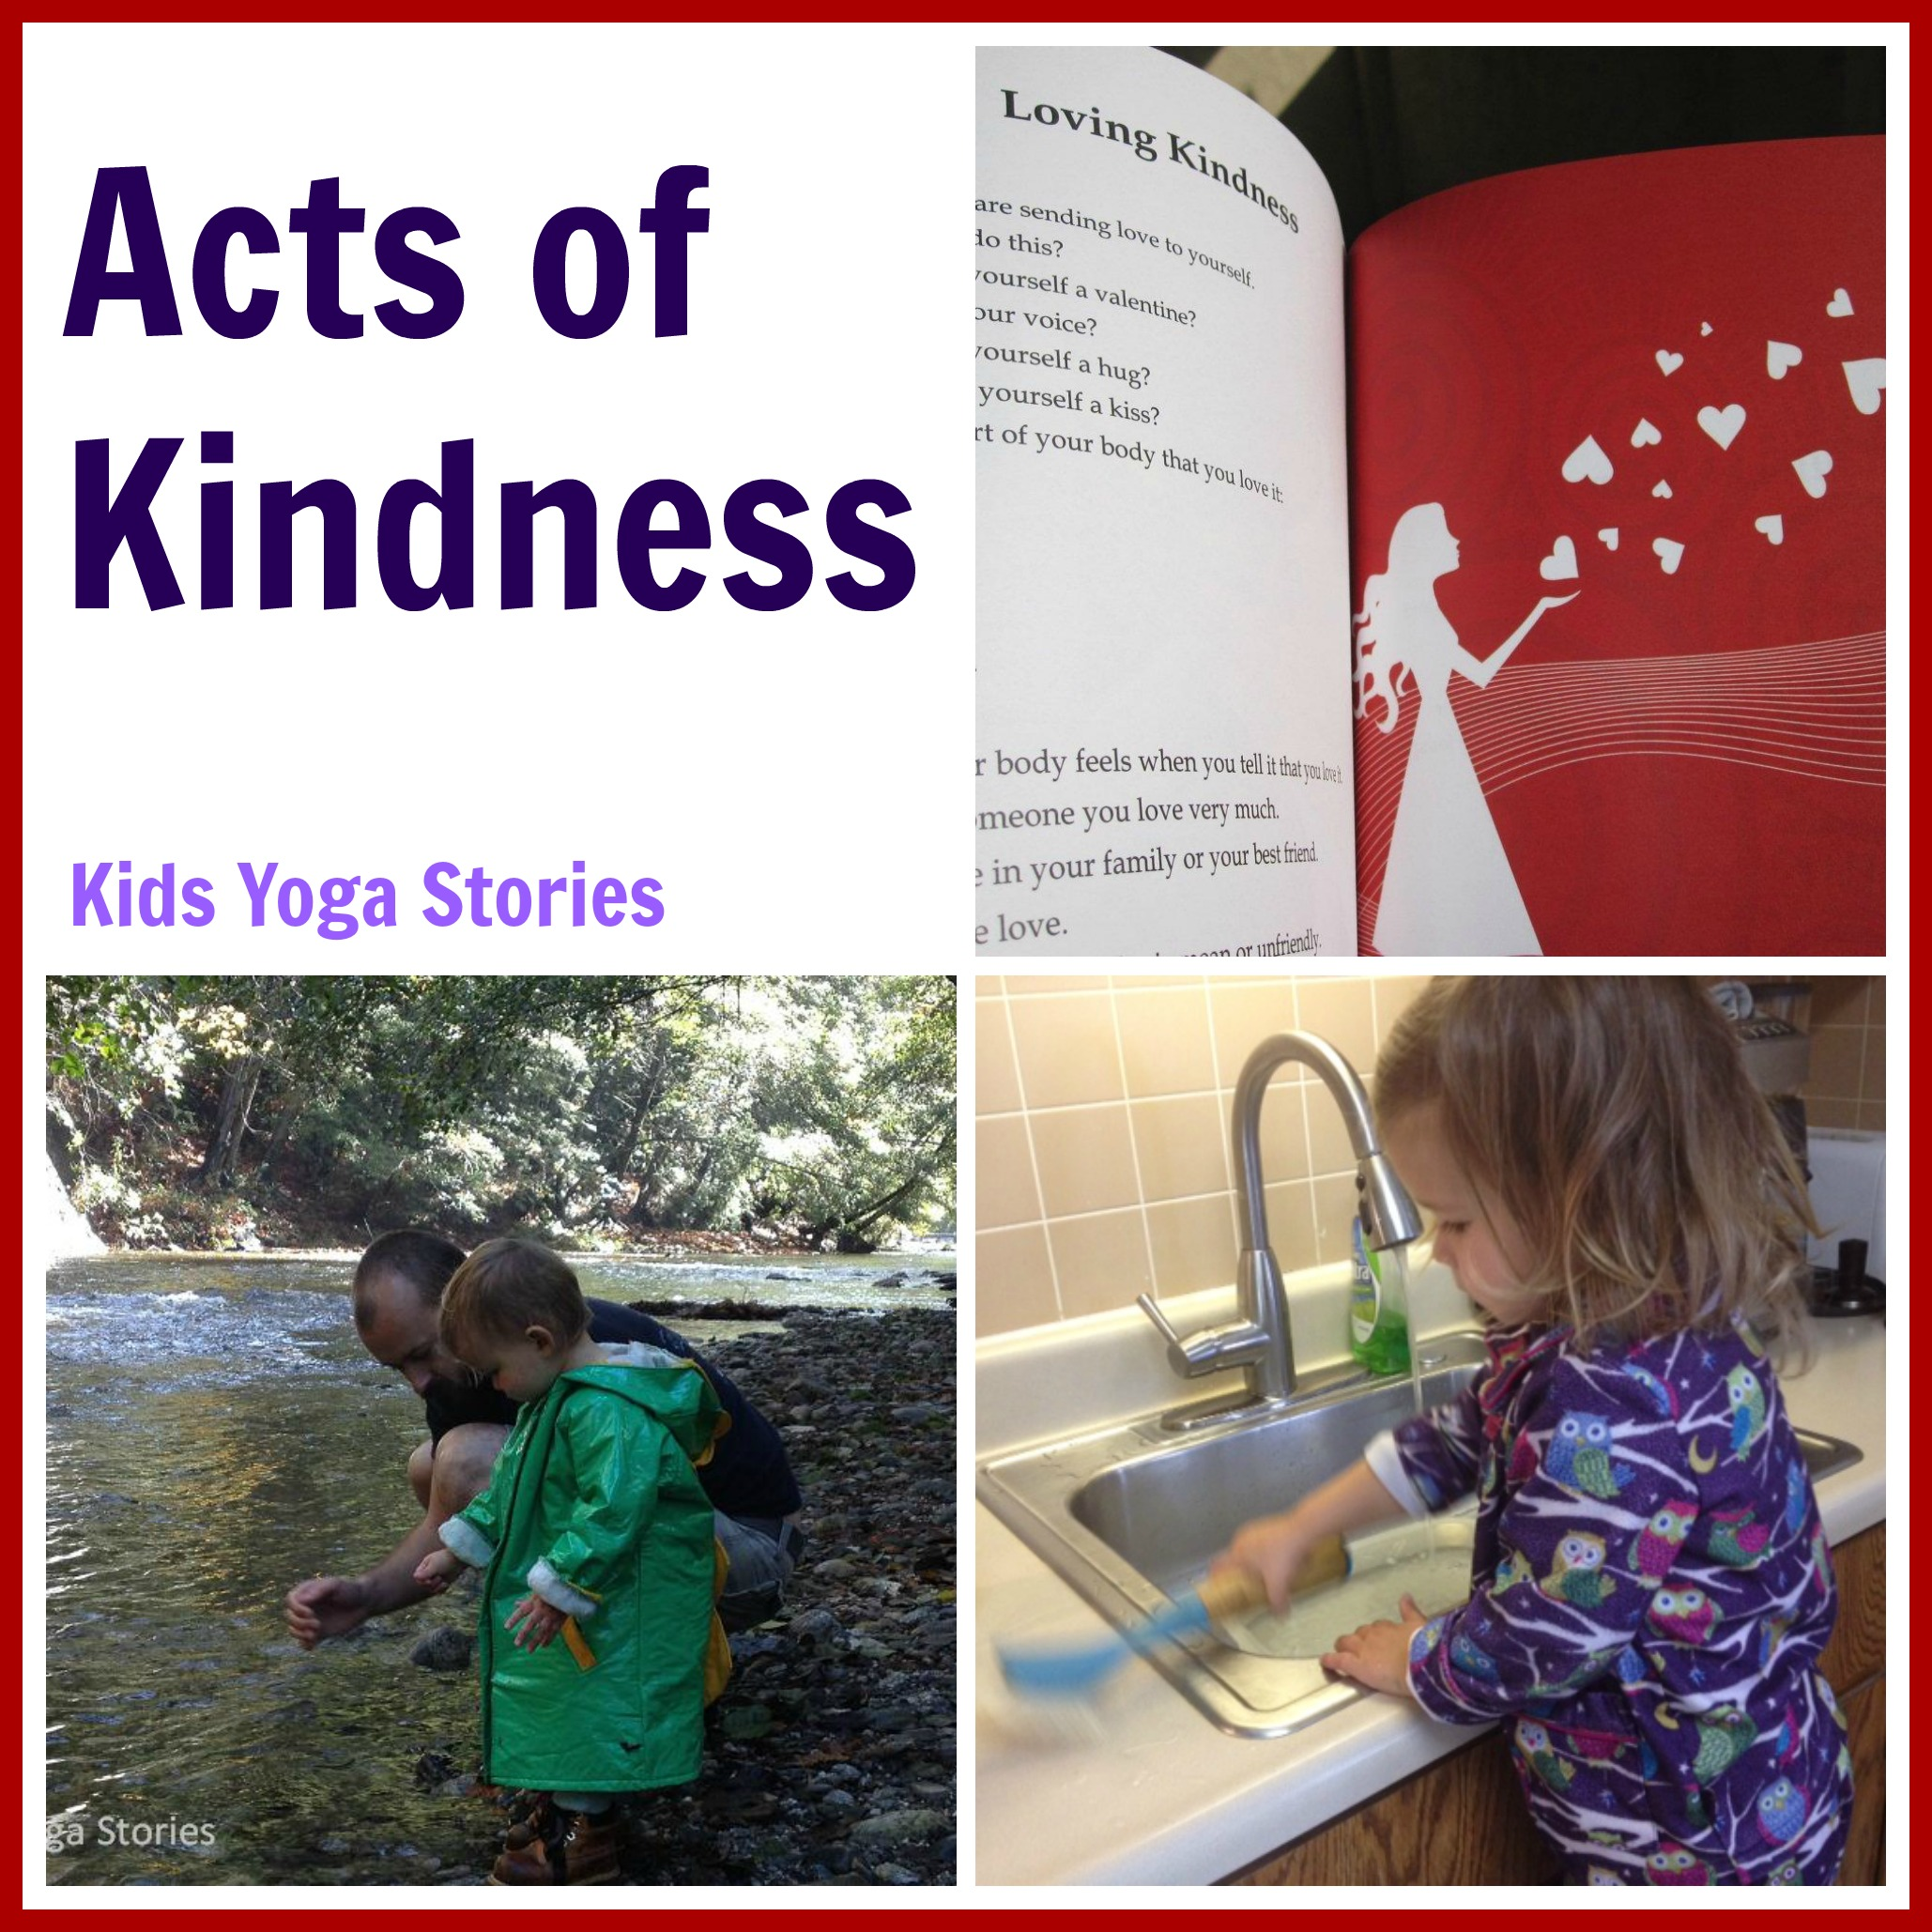 Acts of Kindness through our Thoughts, Words, and Actions: Kids Yoga Stories {Random Acts of Kindness}